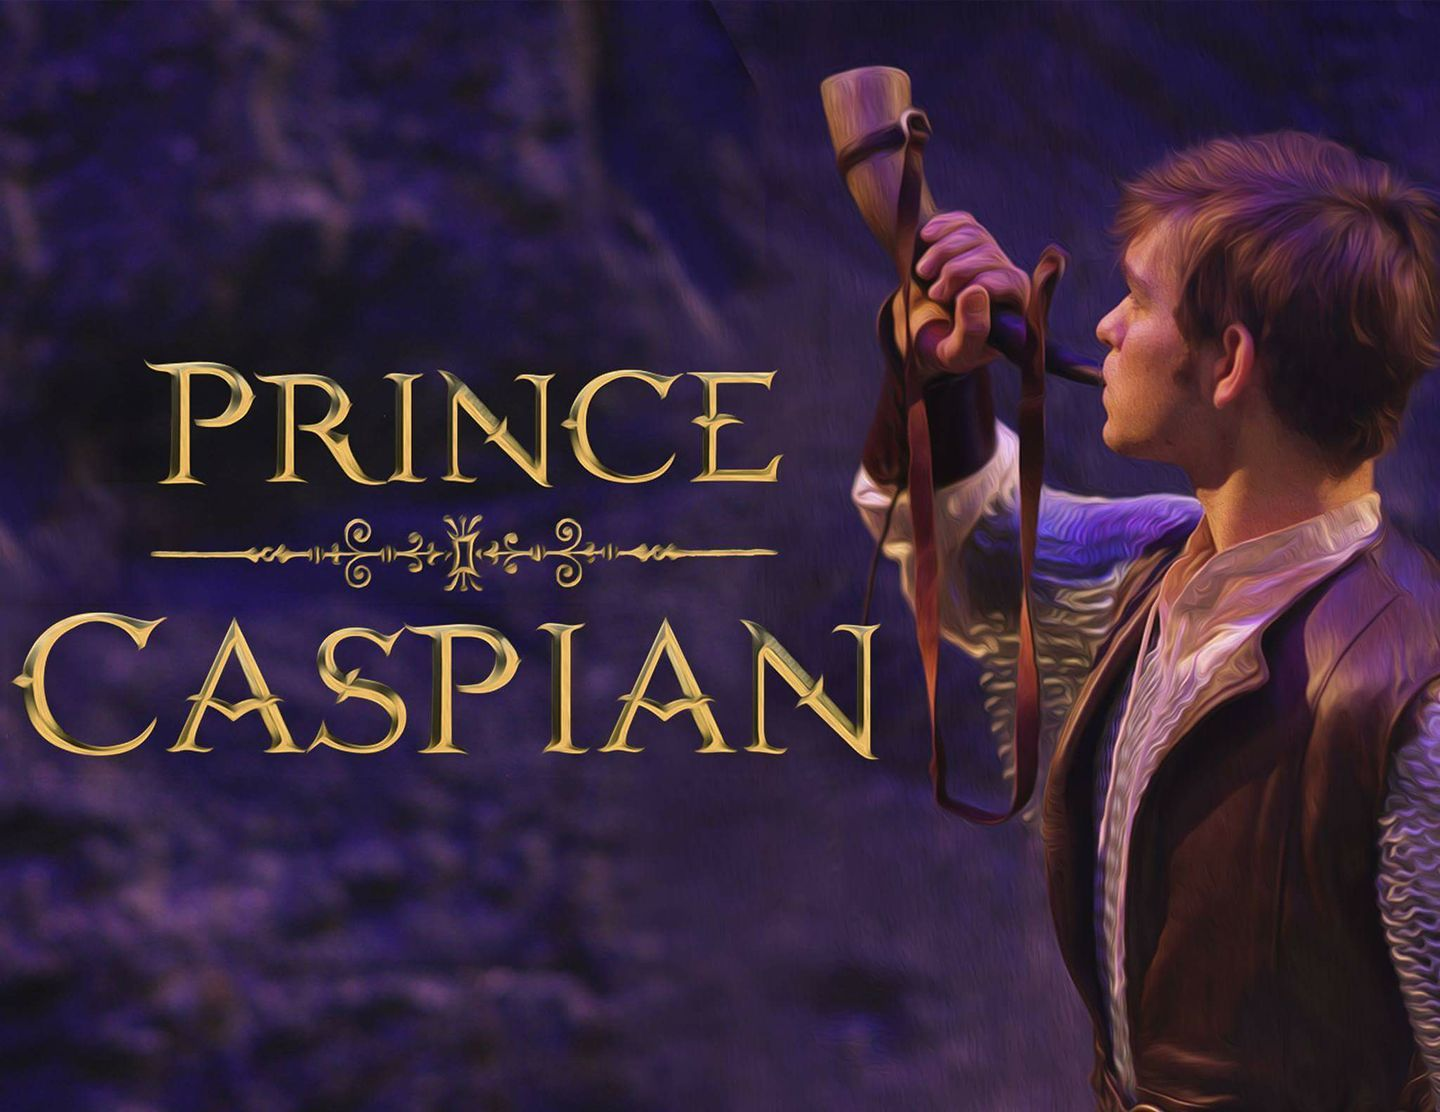 BWW Interview: Zac Johnson of PRINCE CASPIAN at Logos Theatre